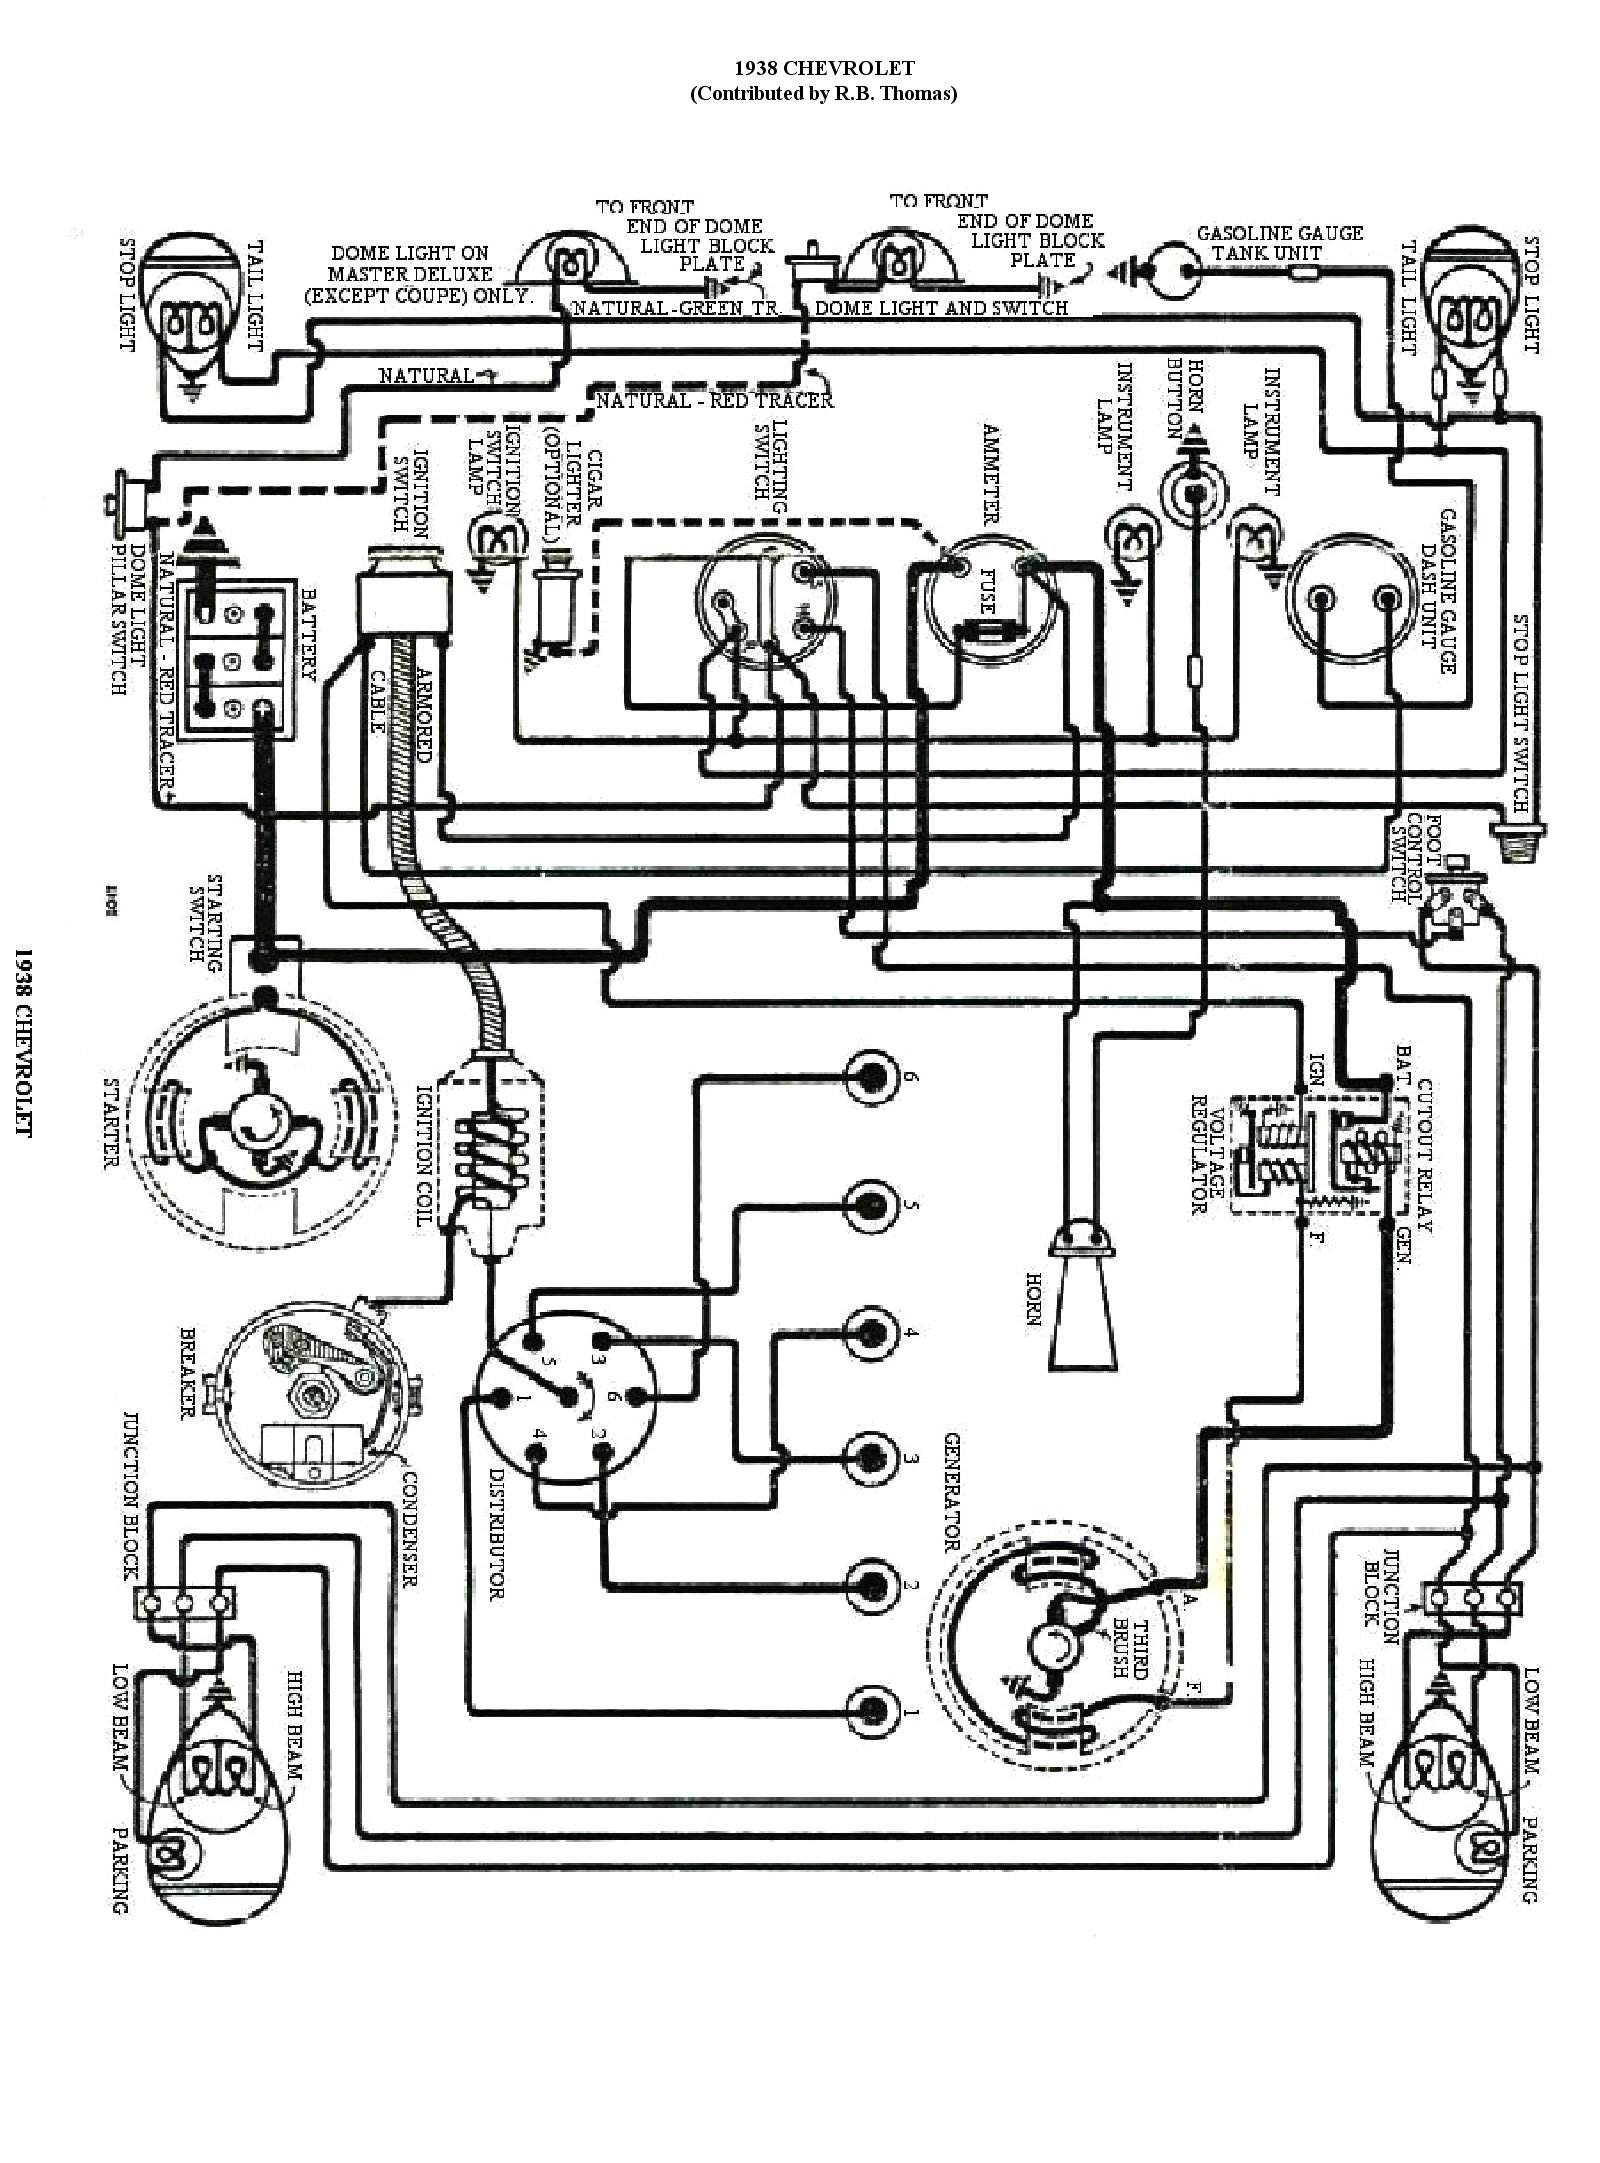 1947 buick wiring diagram 55 chevy drawing at getdrawings com free for personal  55 chevy drawing at getdrawings com free for personal